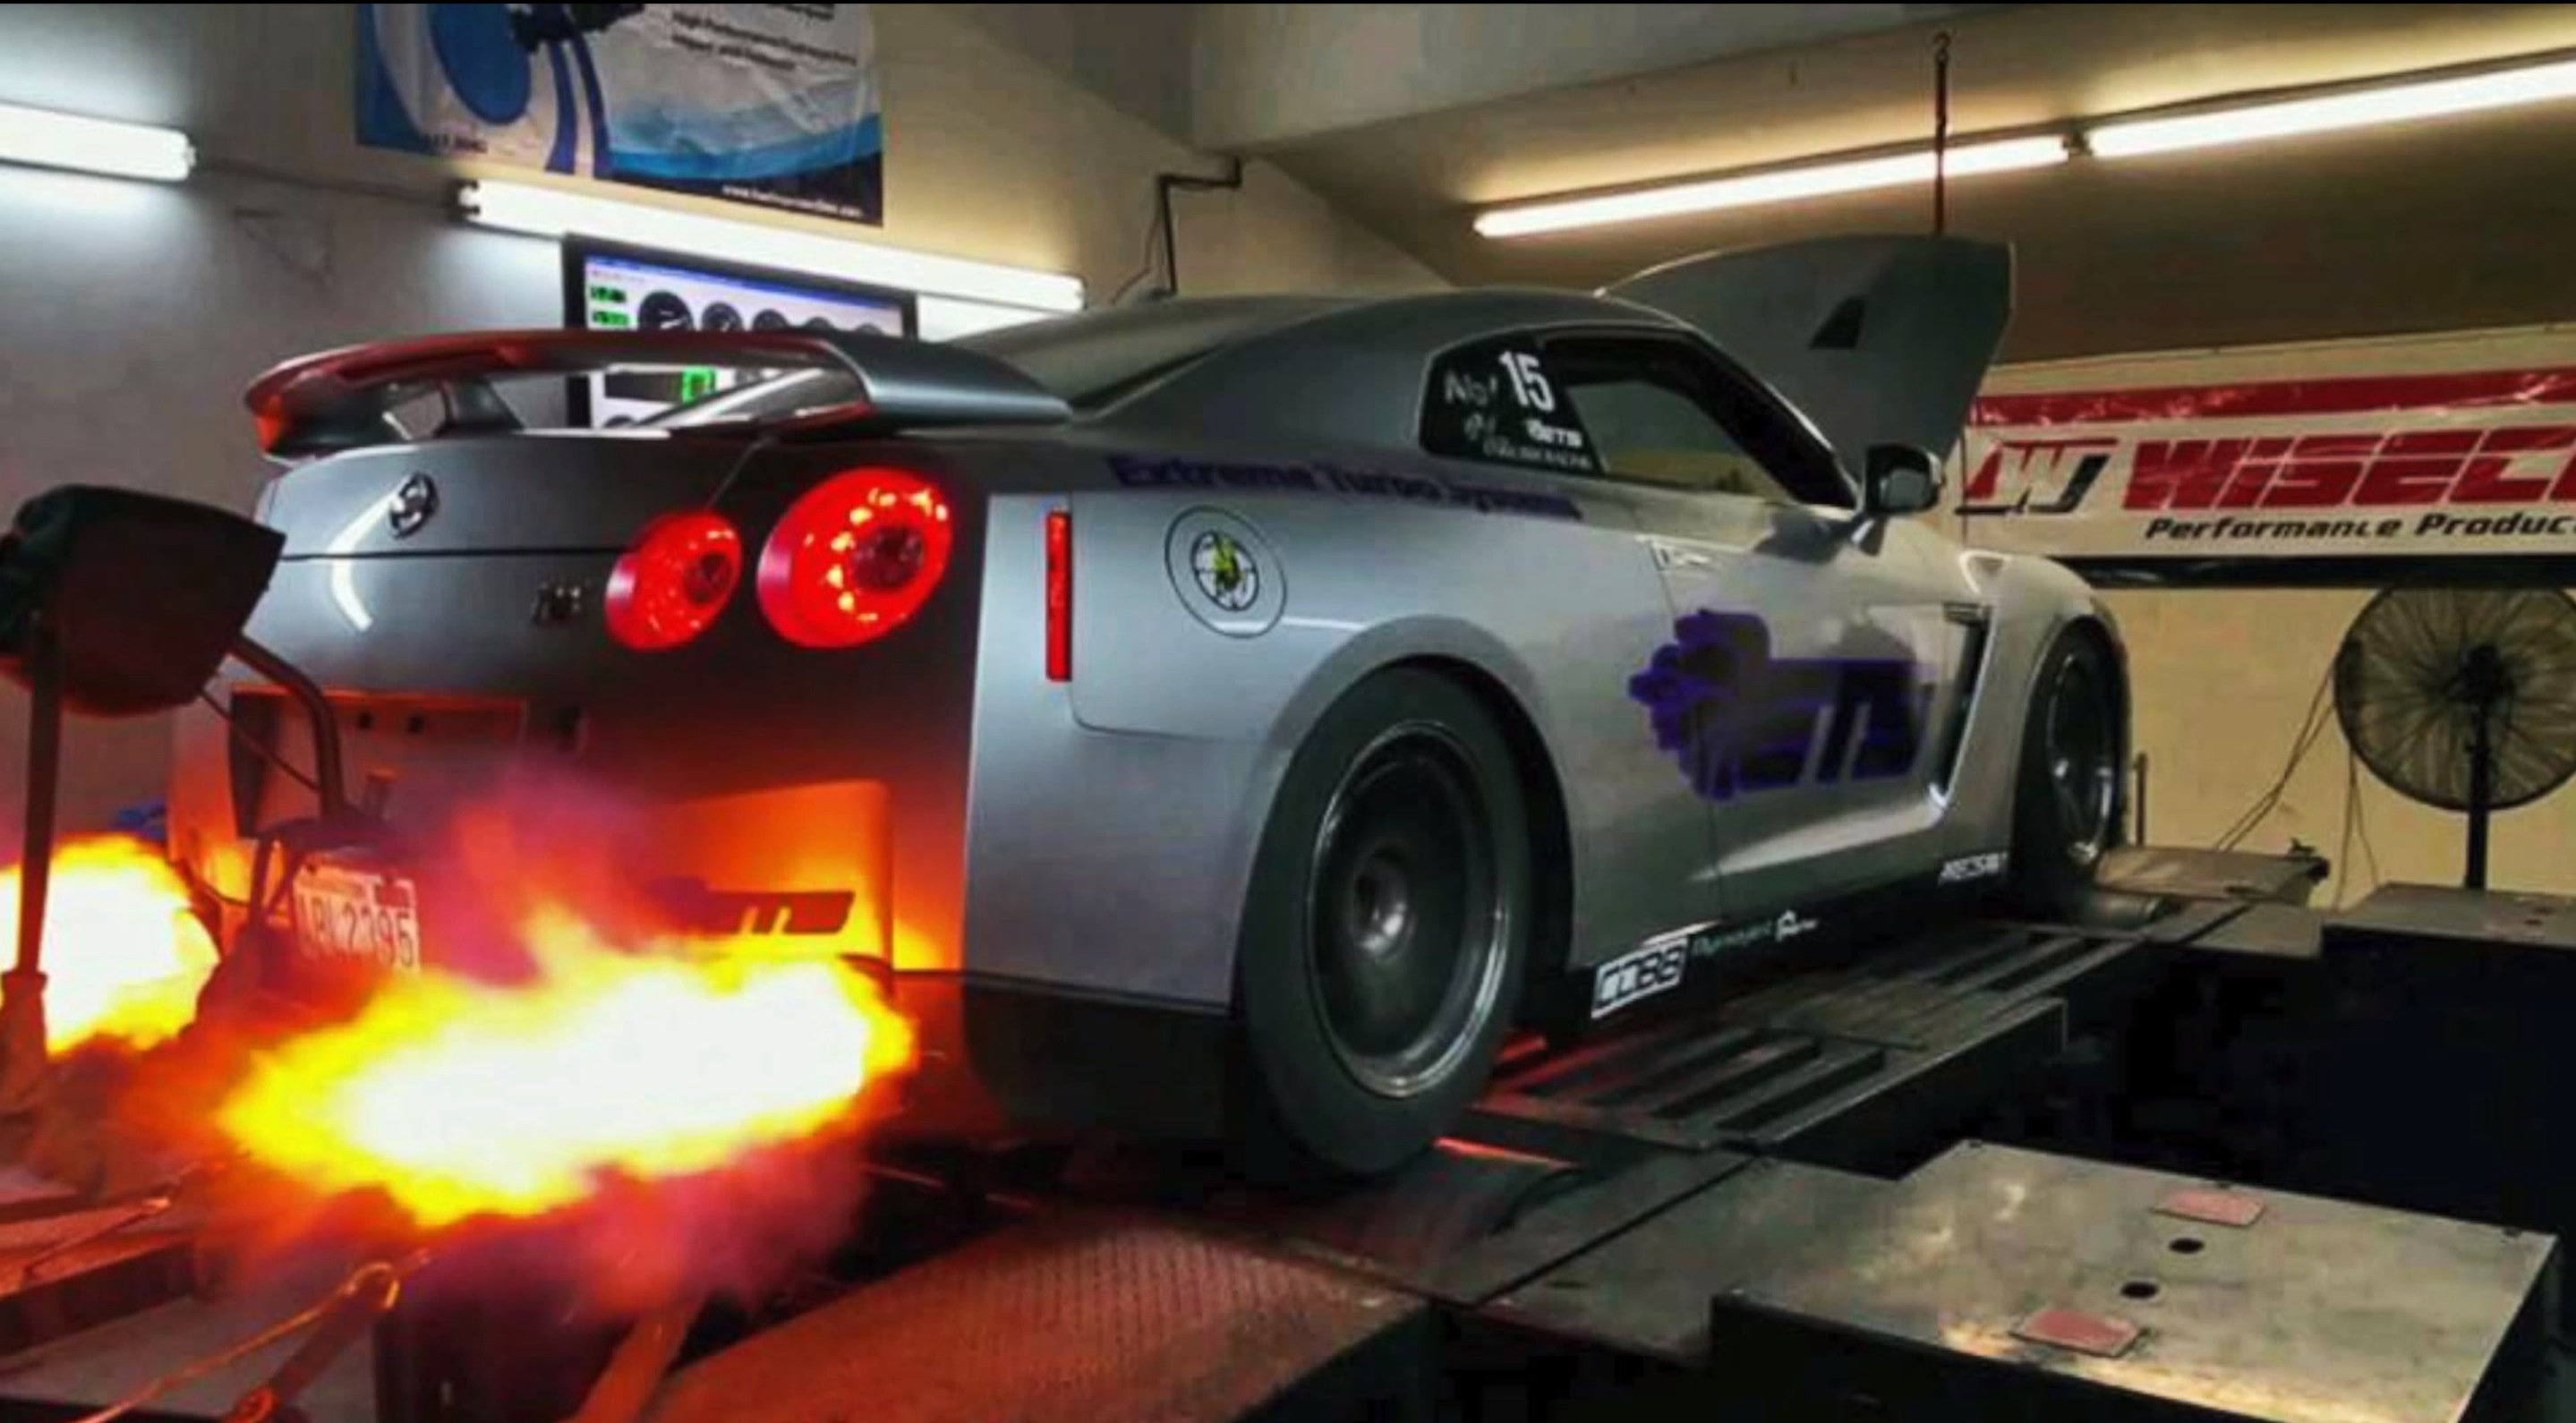 Tanner Fox Car Wallpaper Ets Gt R Breaks World Record For 1 4 Mile Amp Dyno